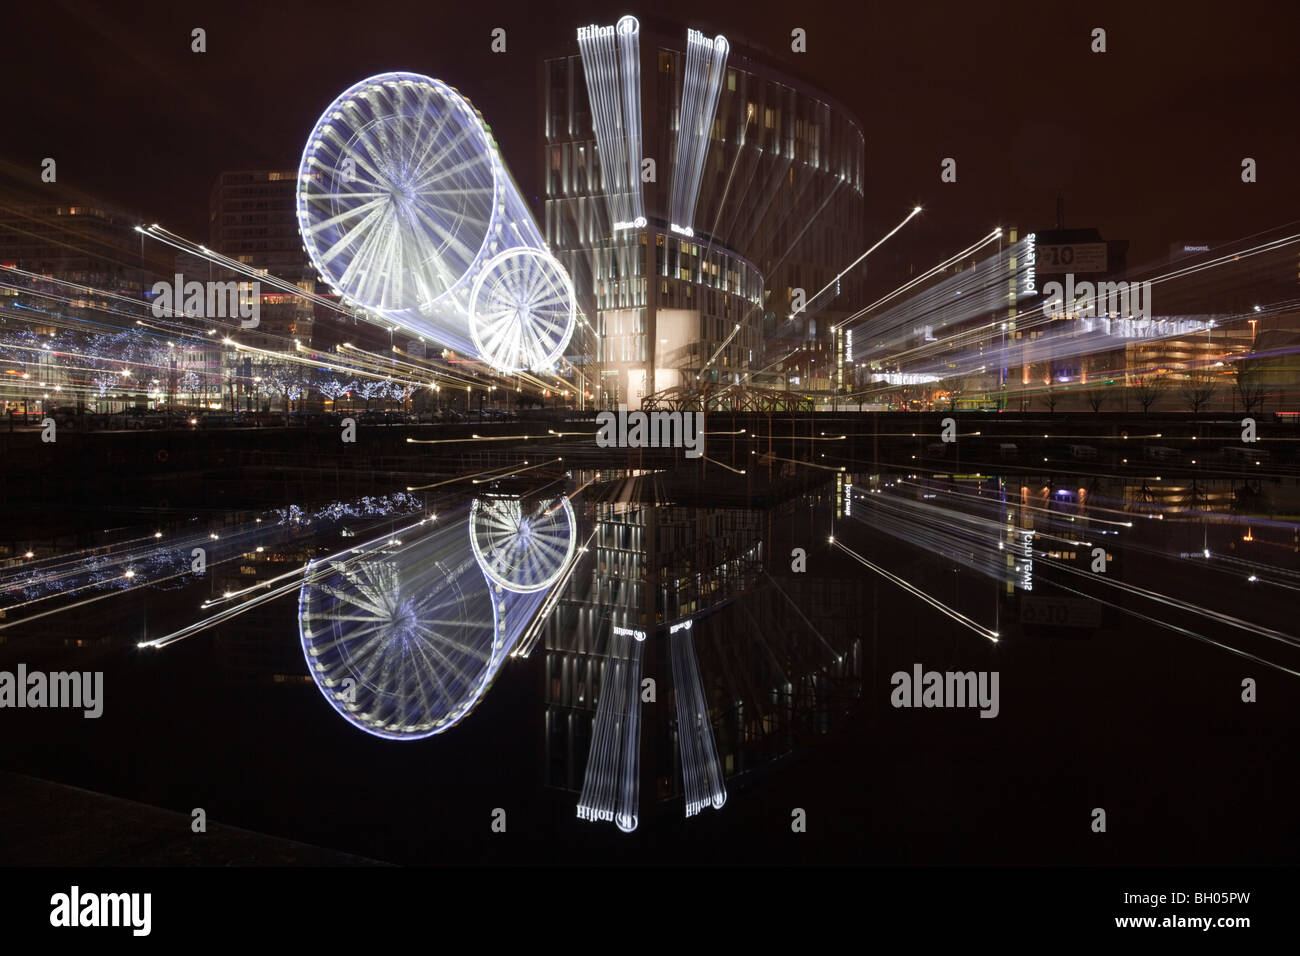 Liverpool Merseyside England UK Britain. Liverpool One Wheel and waterfront reflections zoomed across Salthouse - Stock Image